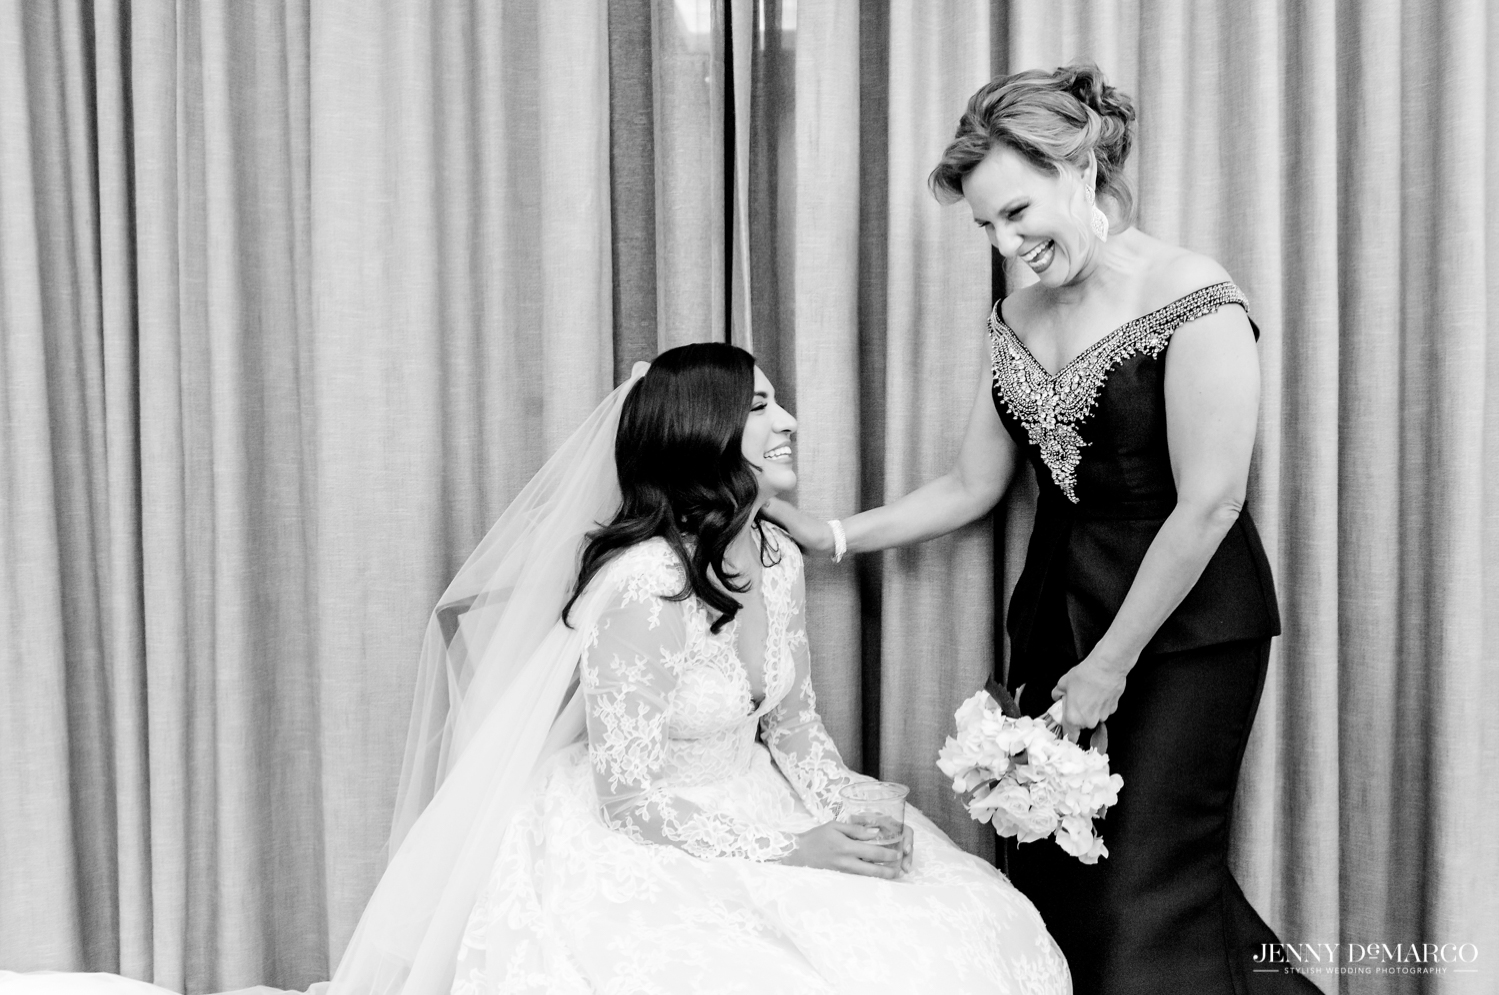 mother of the groom talking with the bride before she walks down the aisle